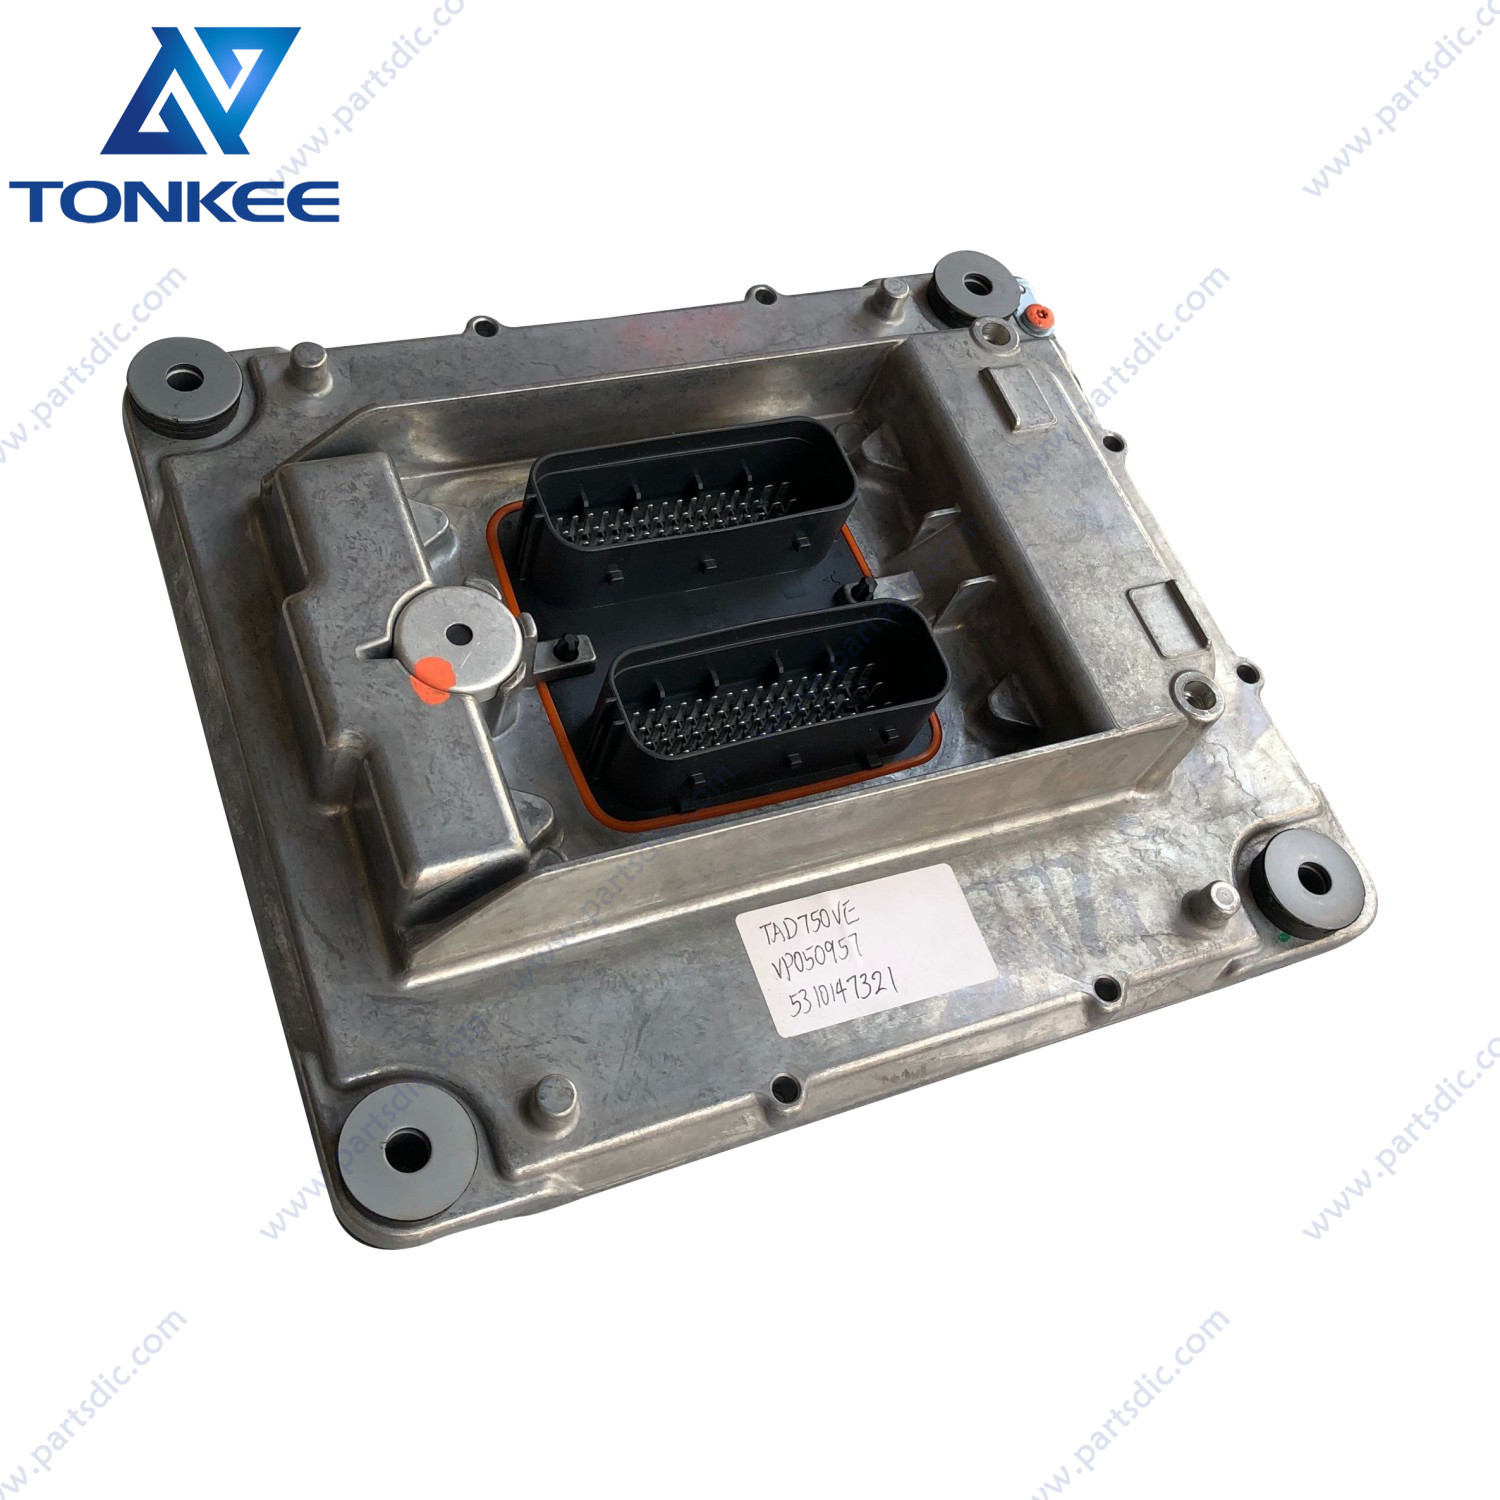 NEW NO. 5310147321 60100001 60100001P03 TRW ECU engine control unit TAD750VE DCE140-6 D7E engine electronic control unit Serial for VOLVO excavation